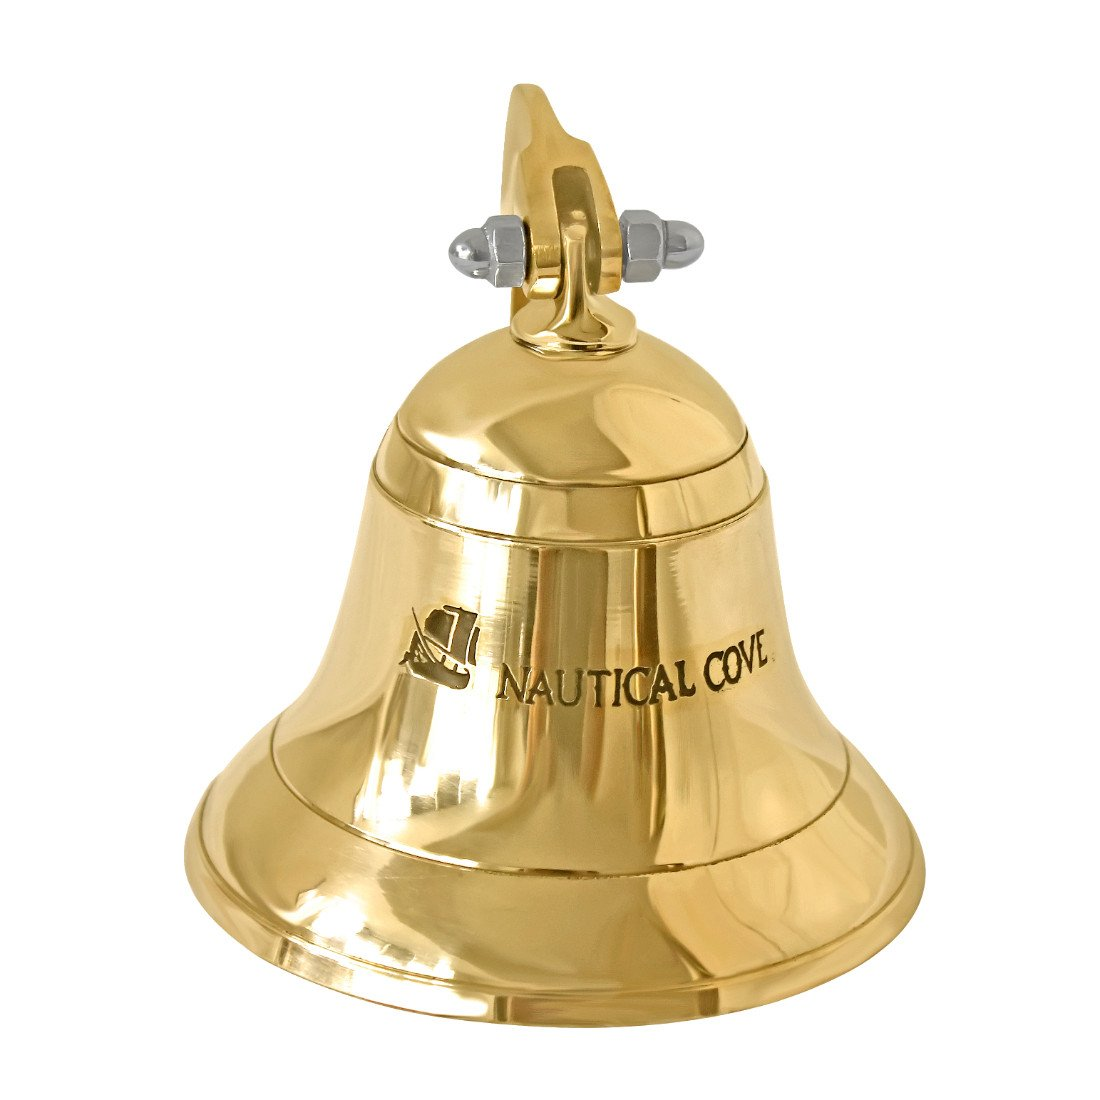 Nautical Cove Solid Brass Ships Bell 3.5'' Tall and Wall Mountable - Clear Ring for Indoor and Outdoor Use